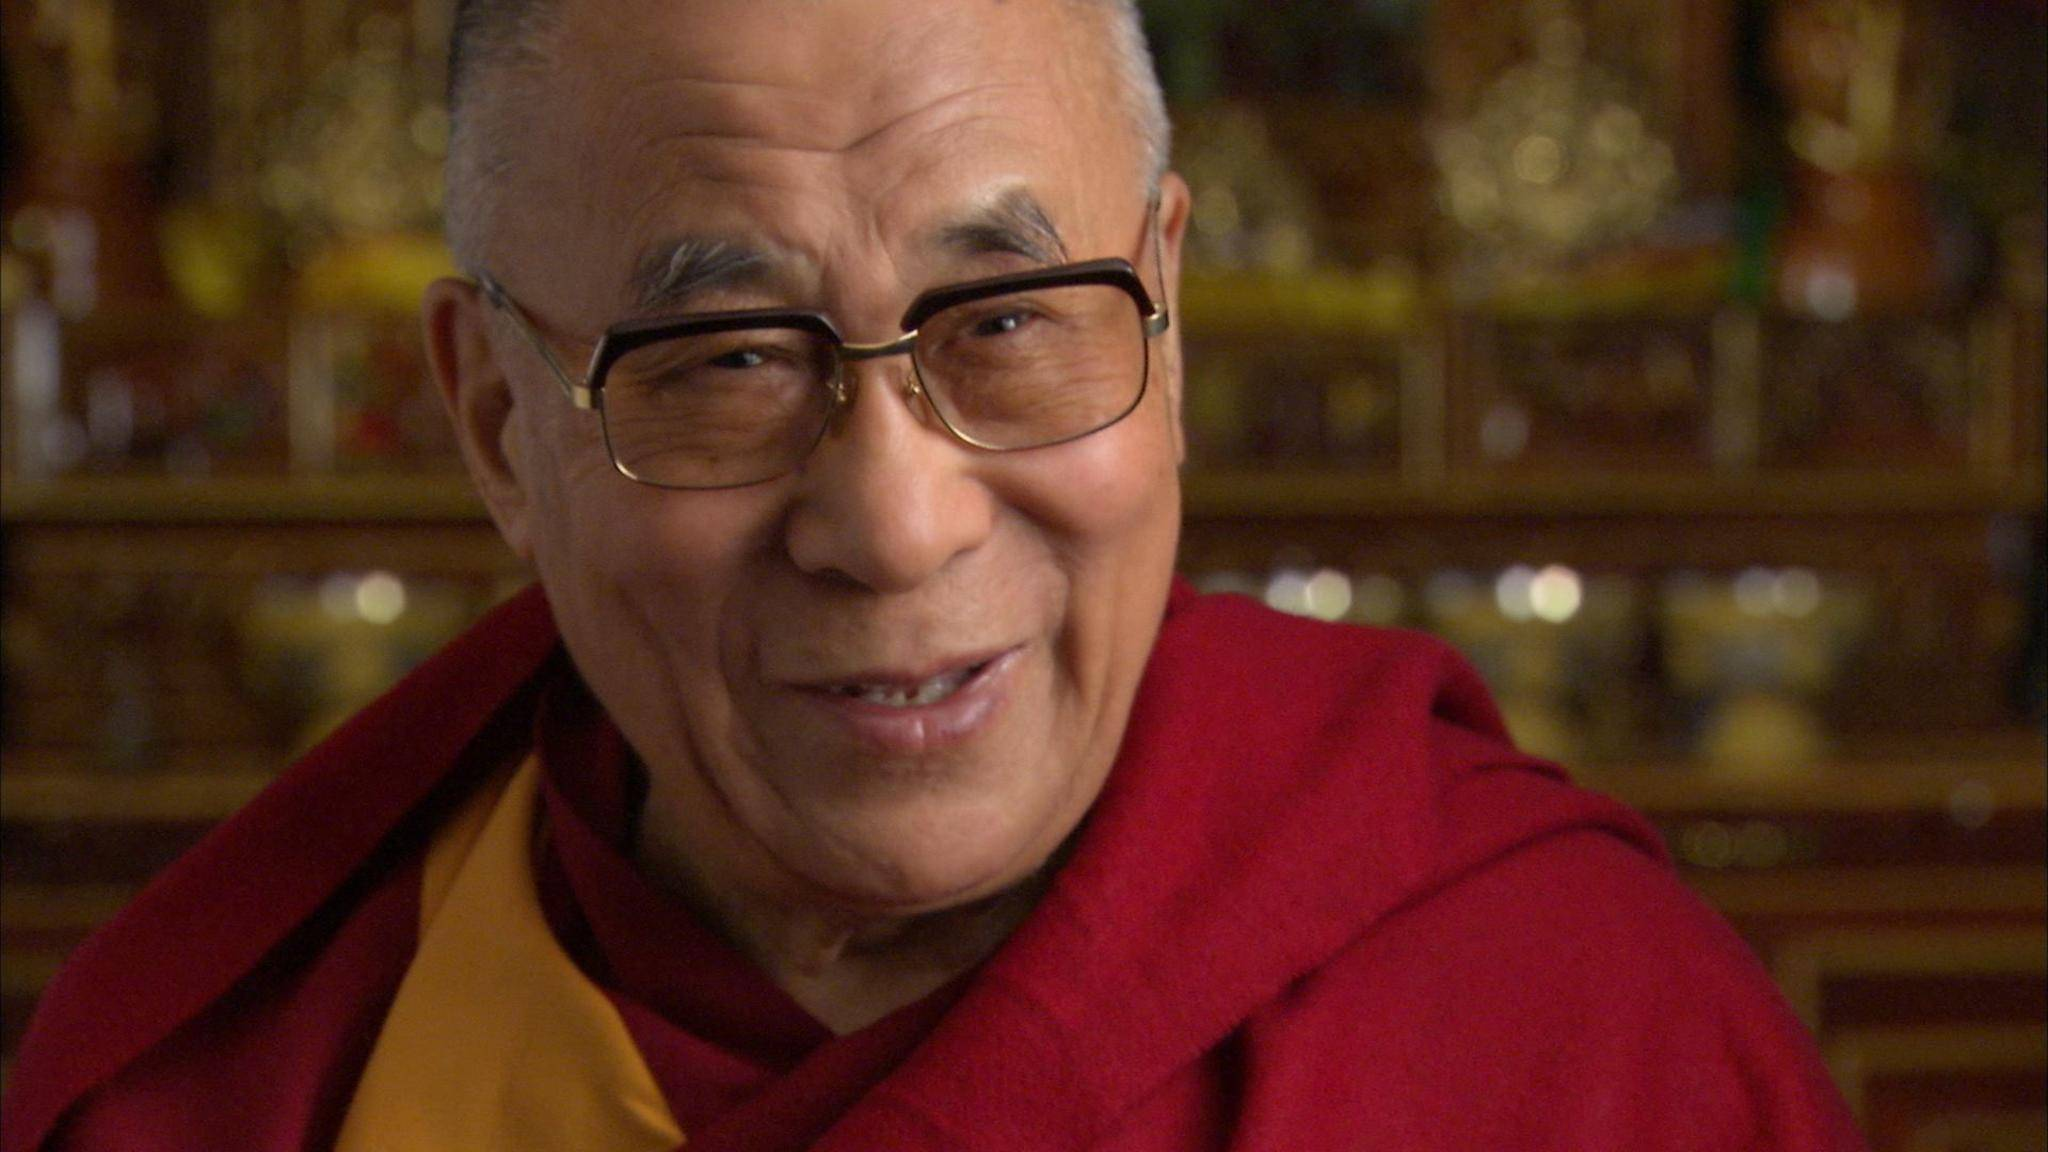 Der Social-Media-Star Dalai Lama hat nun eine eigene iPhone-App.